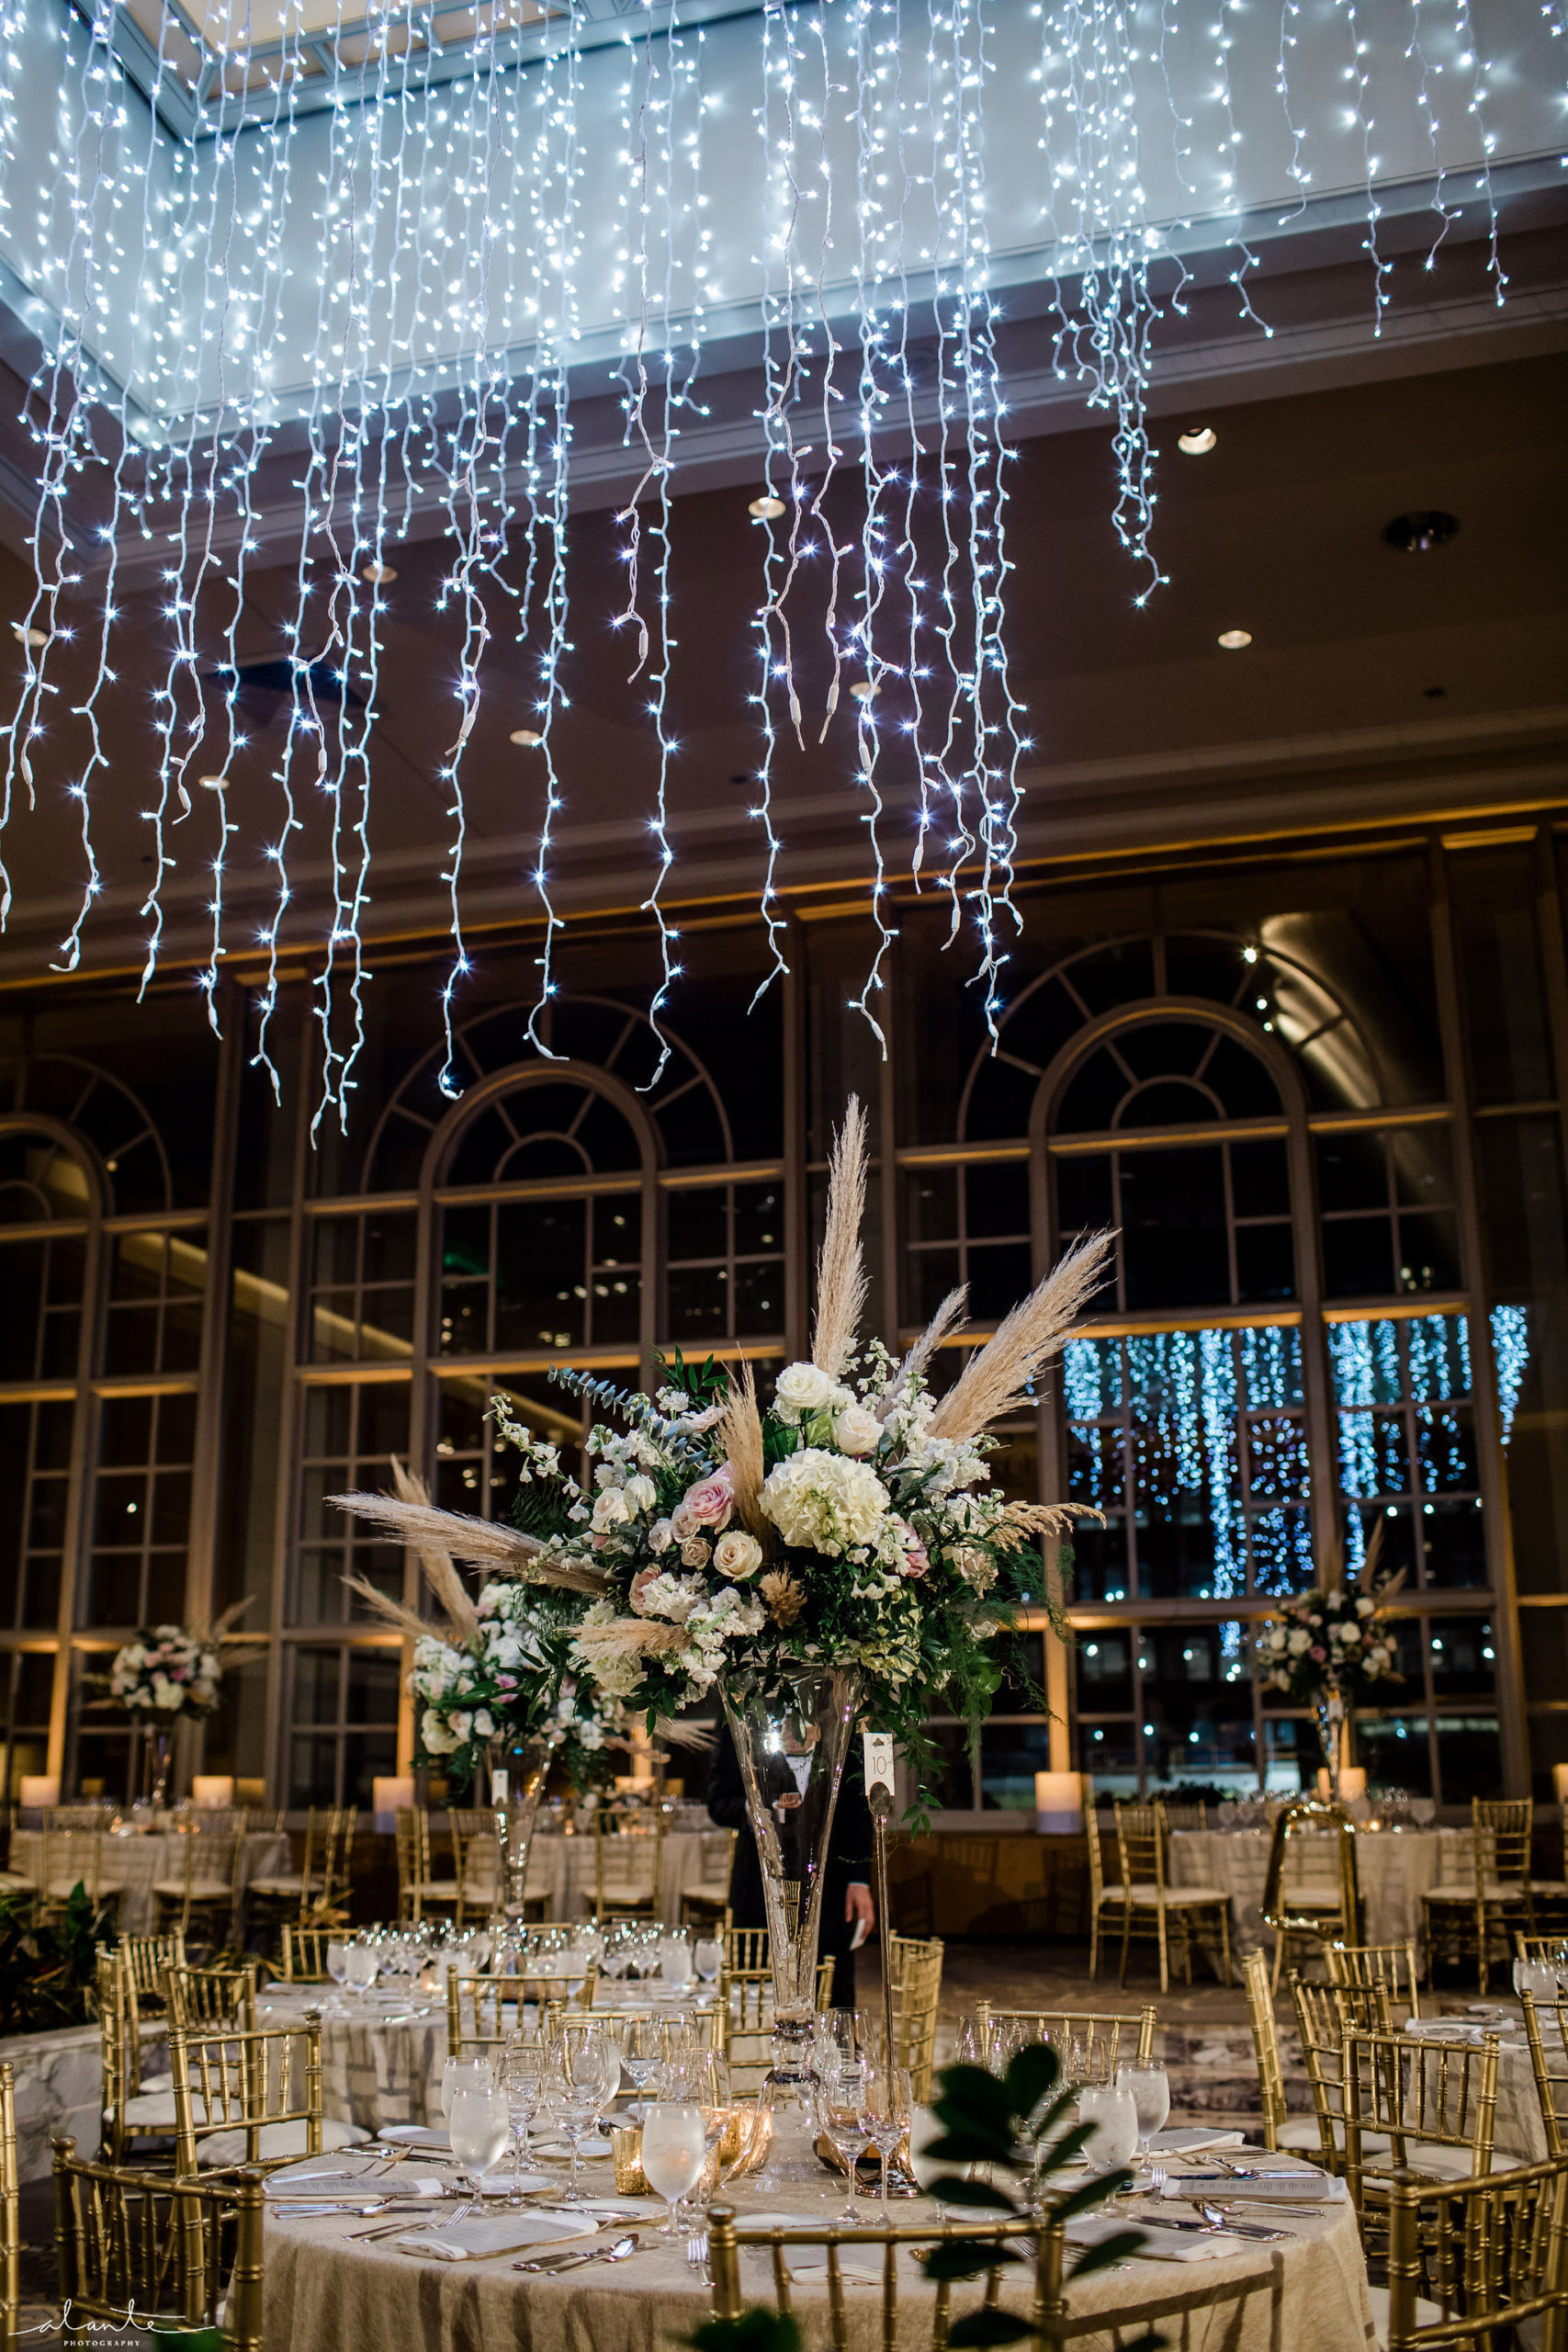 Elevated wedding reception floral with white hydrangea and roses on a tall crystal vase.